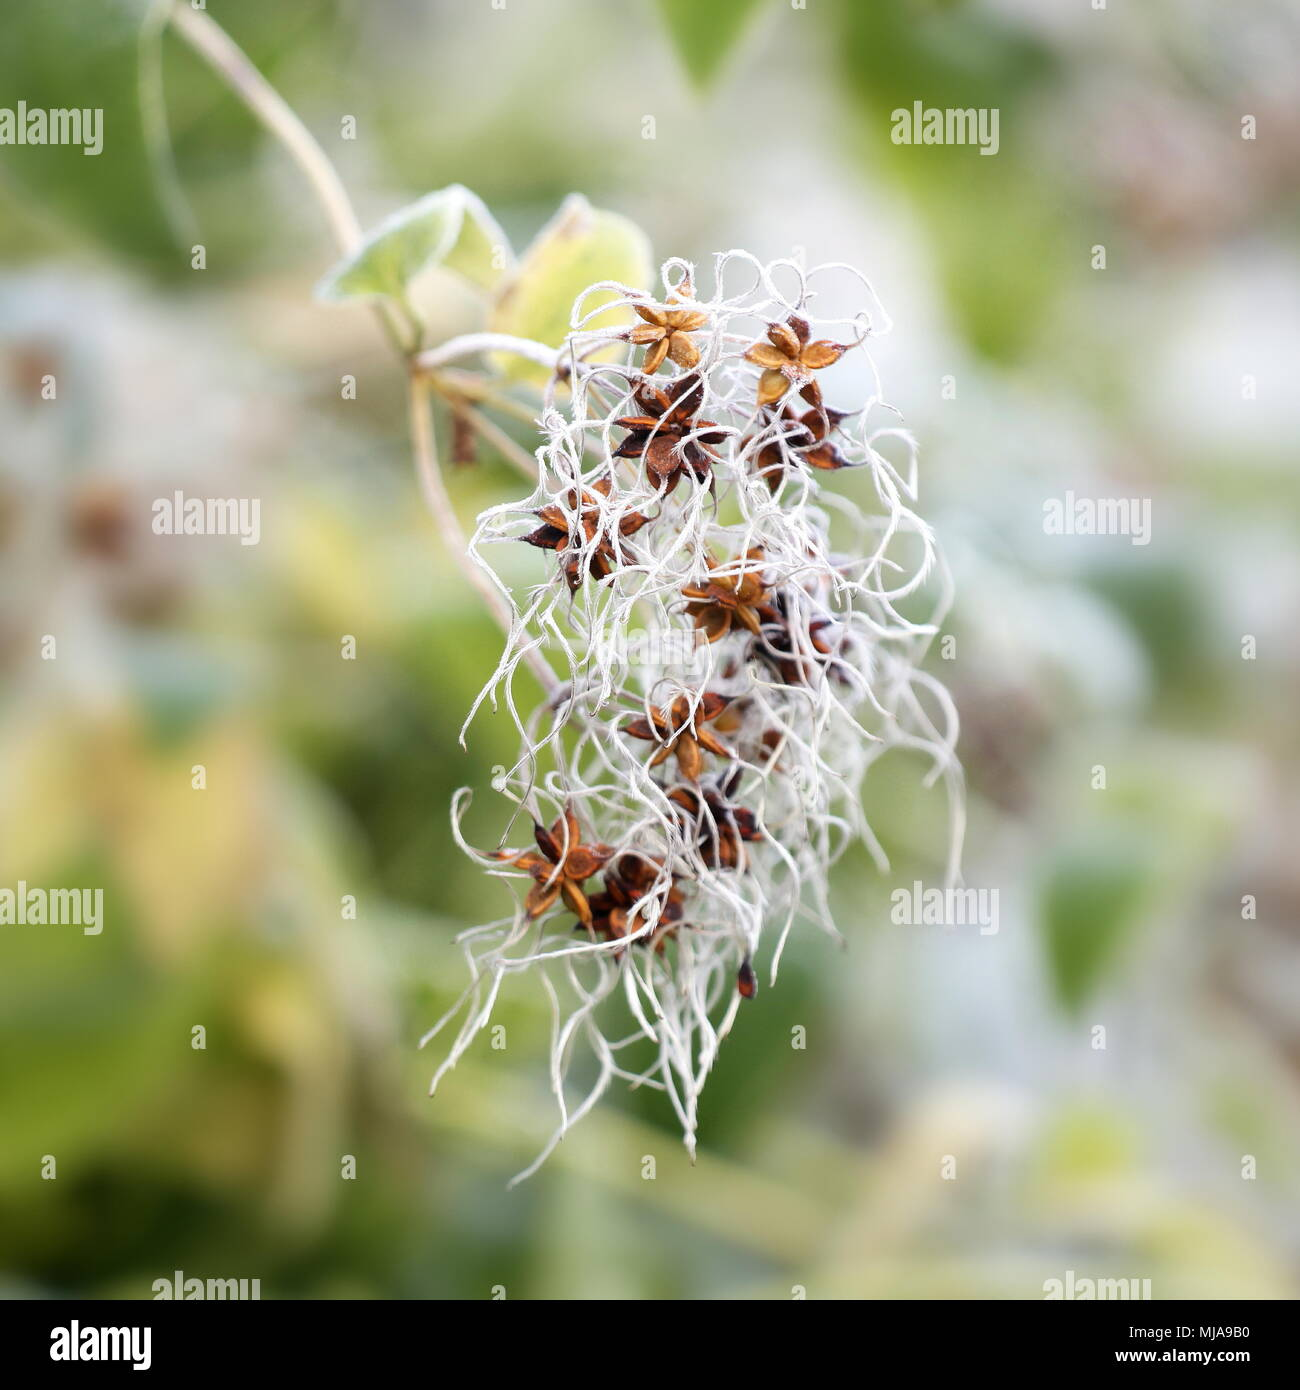 Old man's beard or traveller's joy, Clematis vitalba - Stock Image